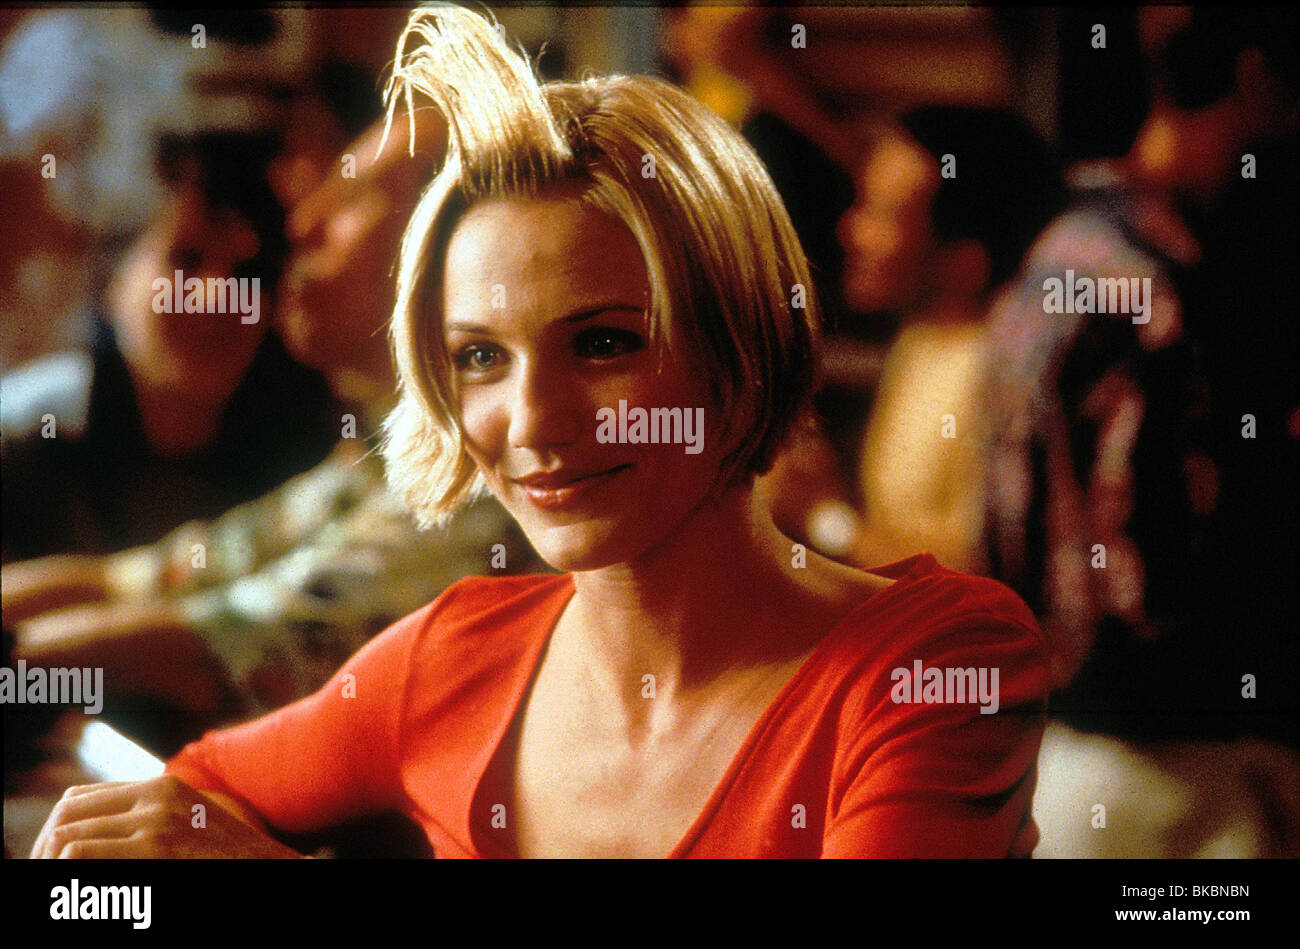 THERE'S SOMETHING ABOUT MARY CAMERON DIAZ TSAM 108 ORIGINAL 35MM Stock Photo